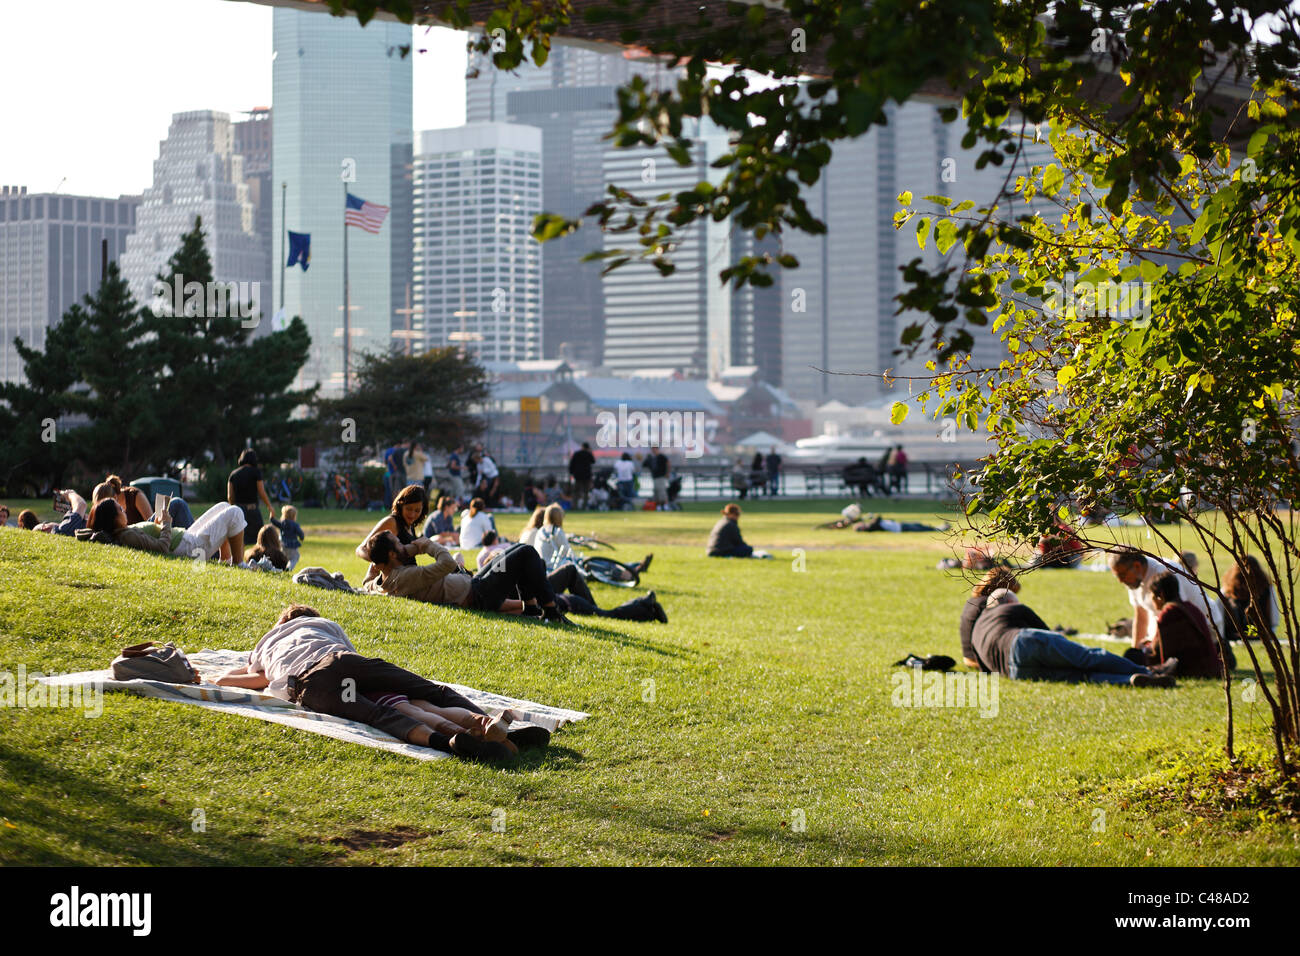 People lying on the grass under the Brooklyn Bridge, New York City, USA - Stock Image